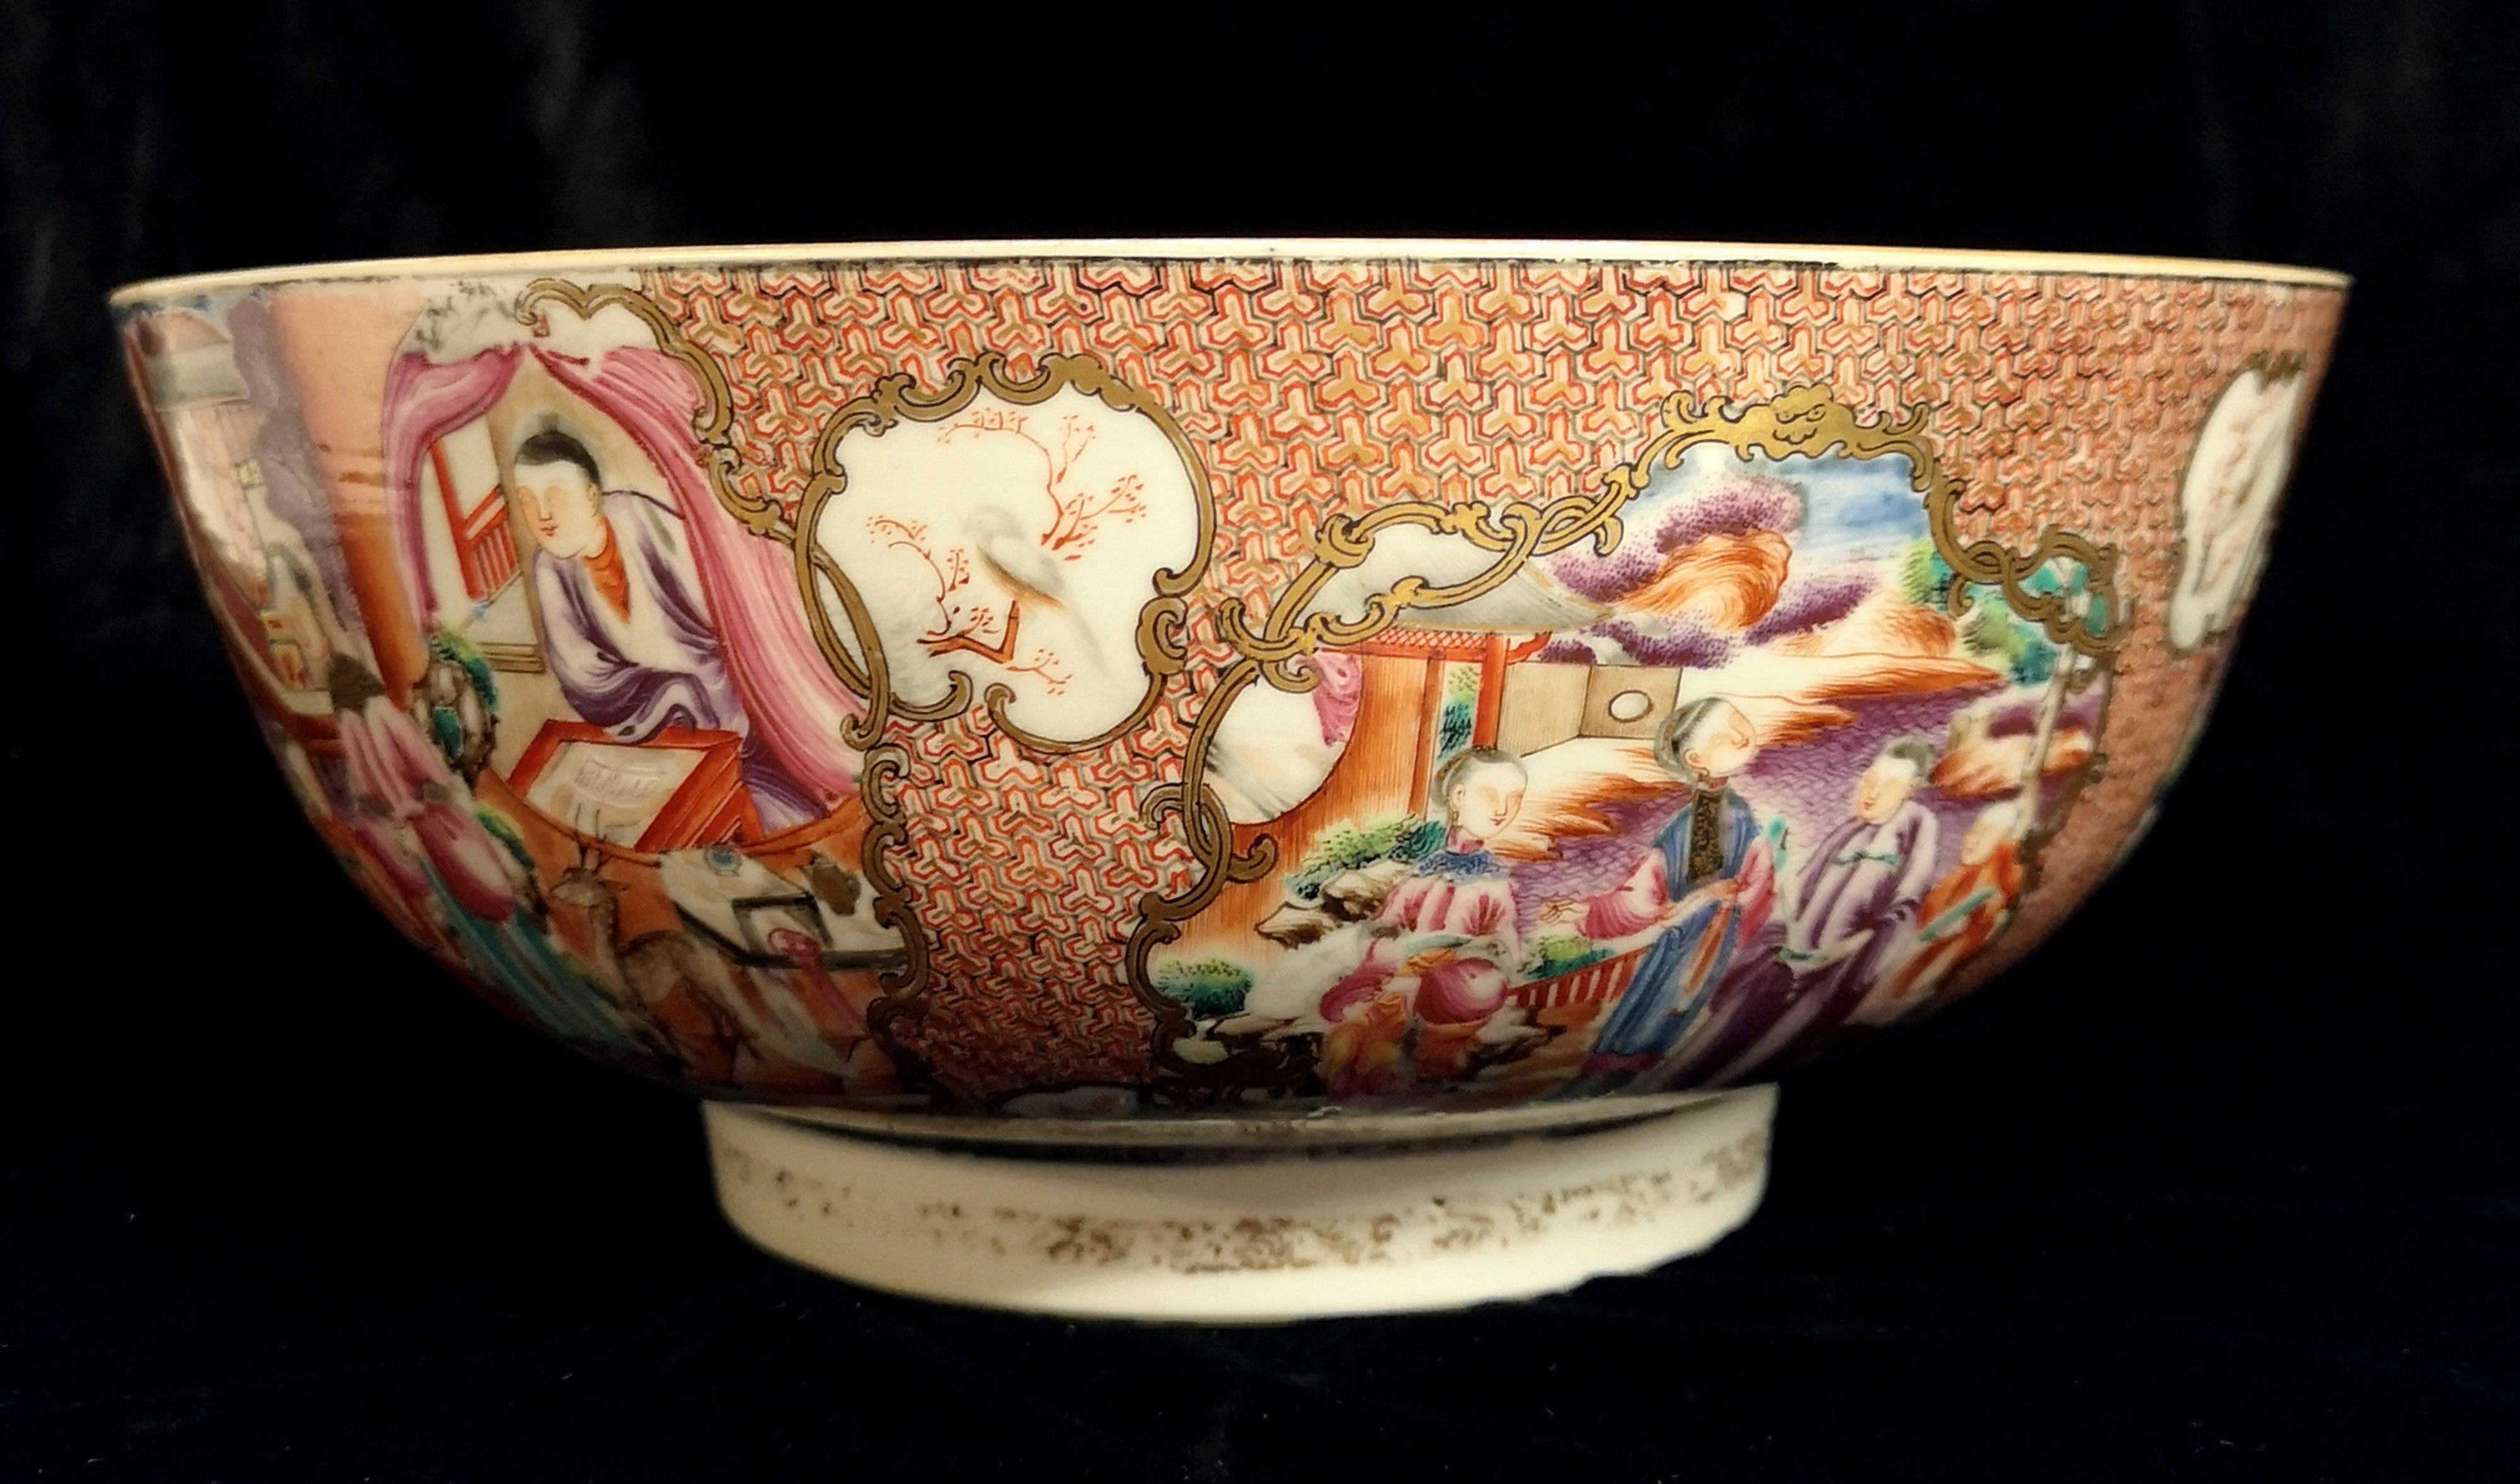 Lot 152 - A CHINESE EXPORT PORCELAIN ROSE PUNCH BOWL Hand painted with an exotic garden scene in gilt